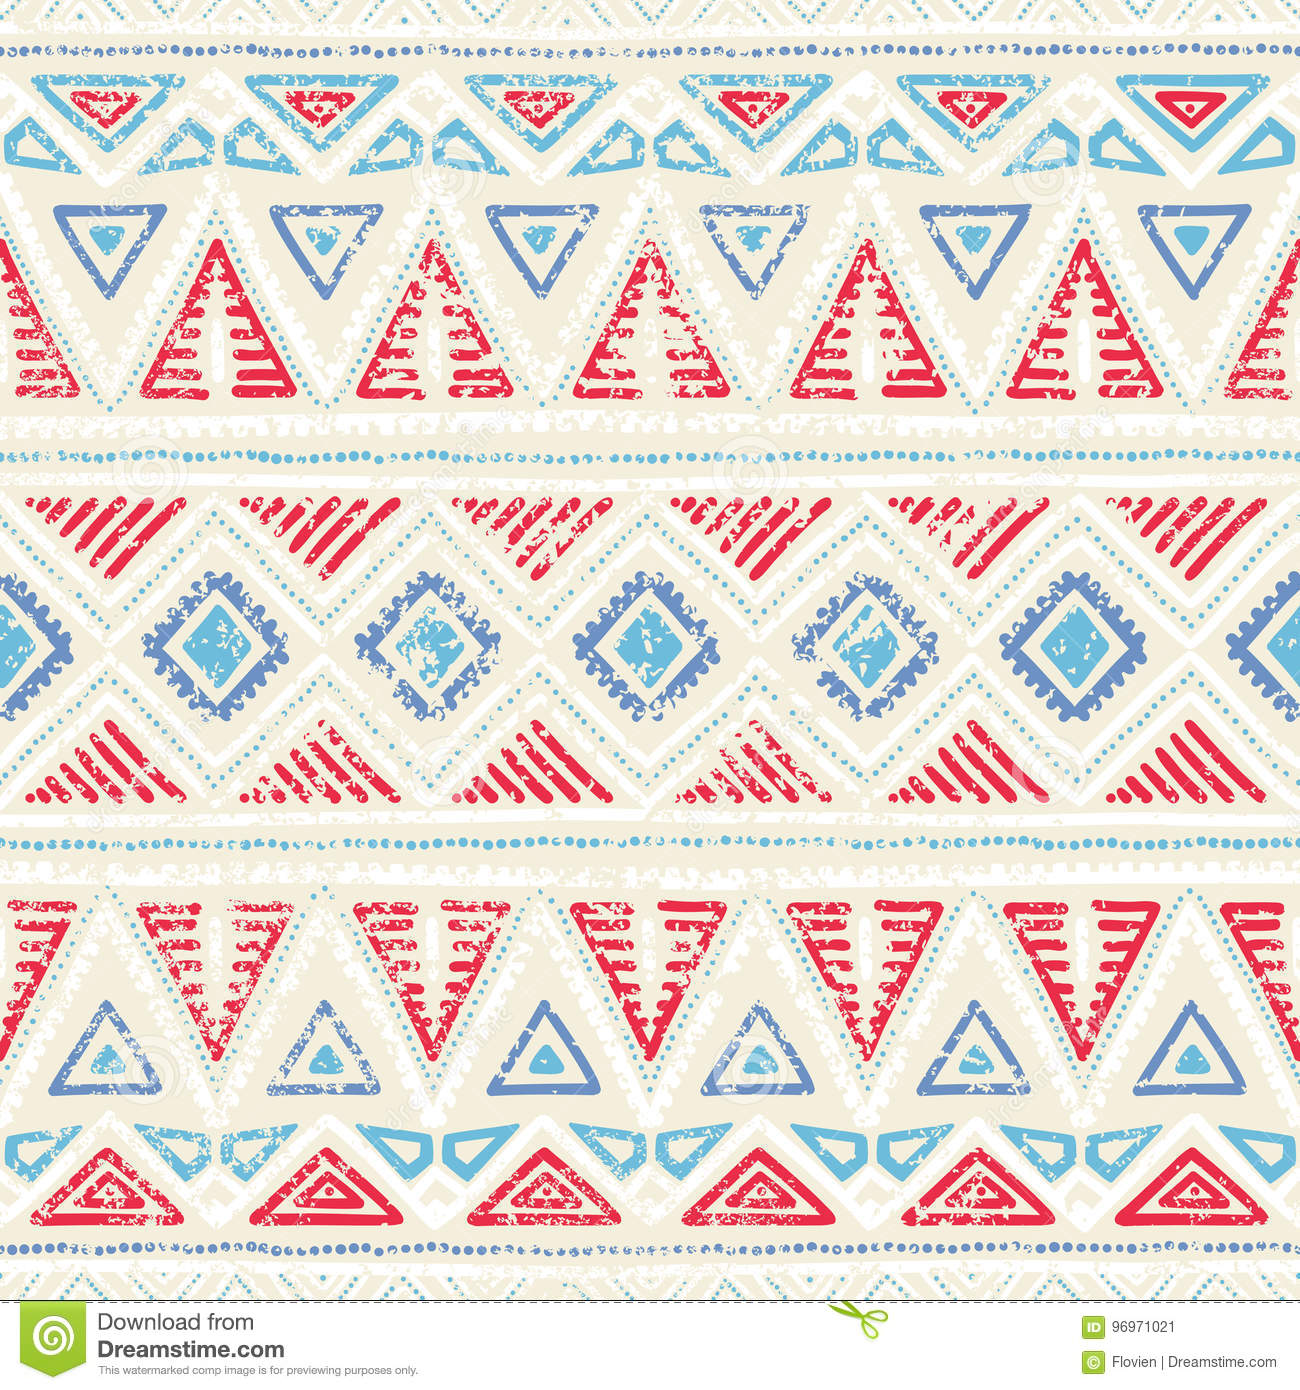 Seamless ethnic pattern. Ornament in tribal style. Grunge texture. Vintage print. Red, white and blue geometric elements.